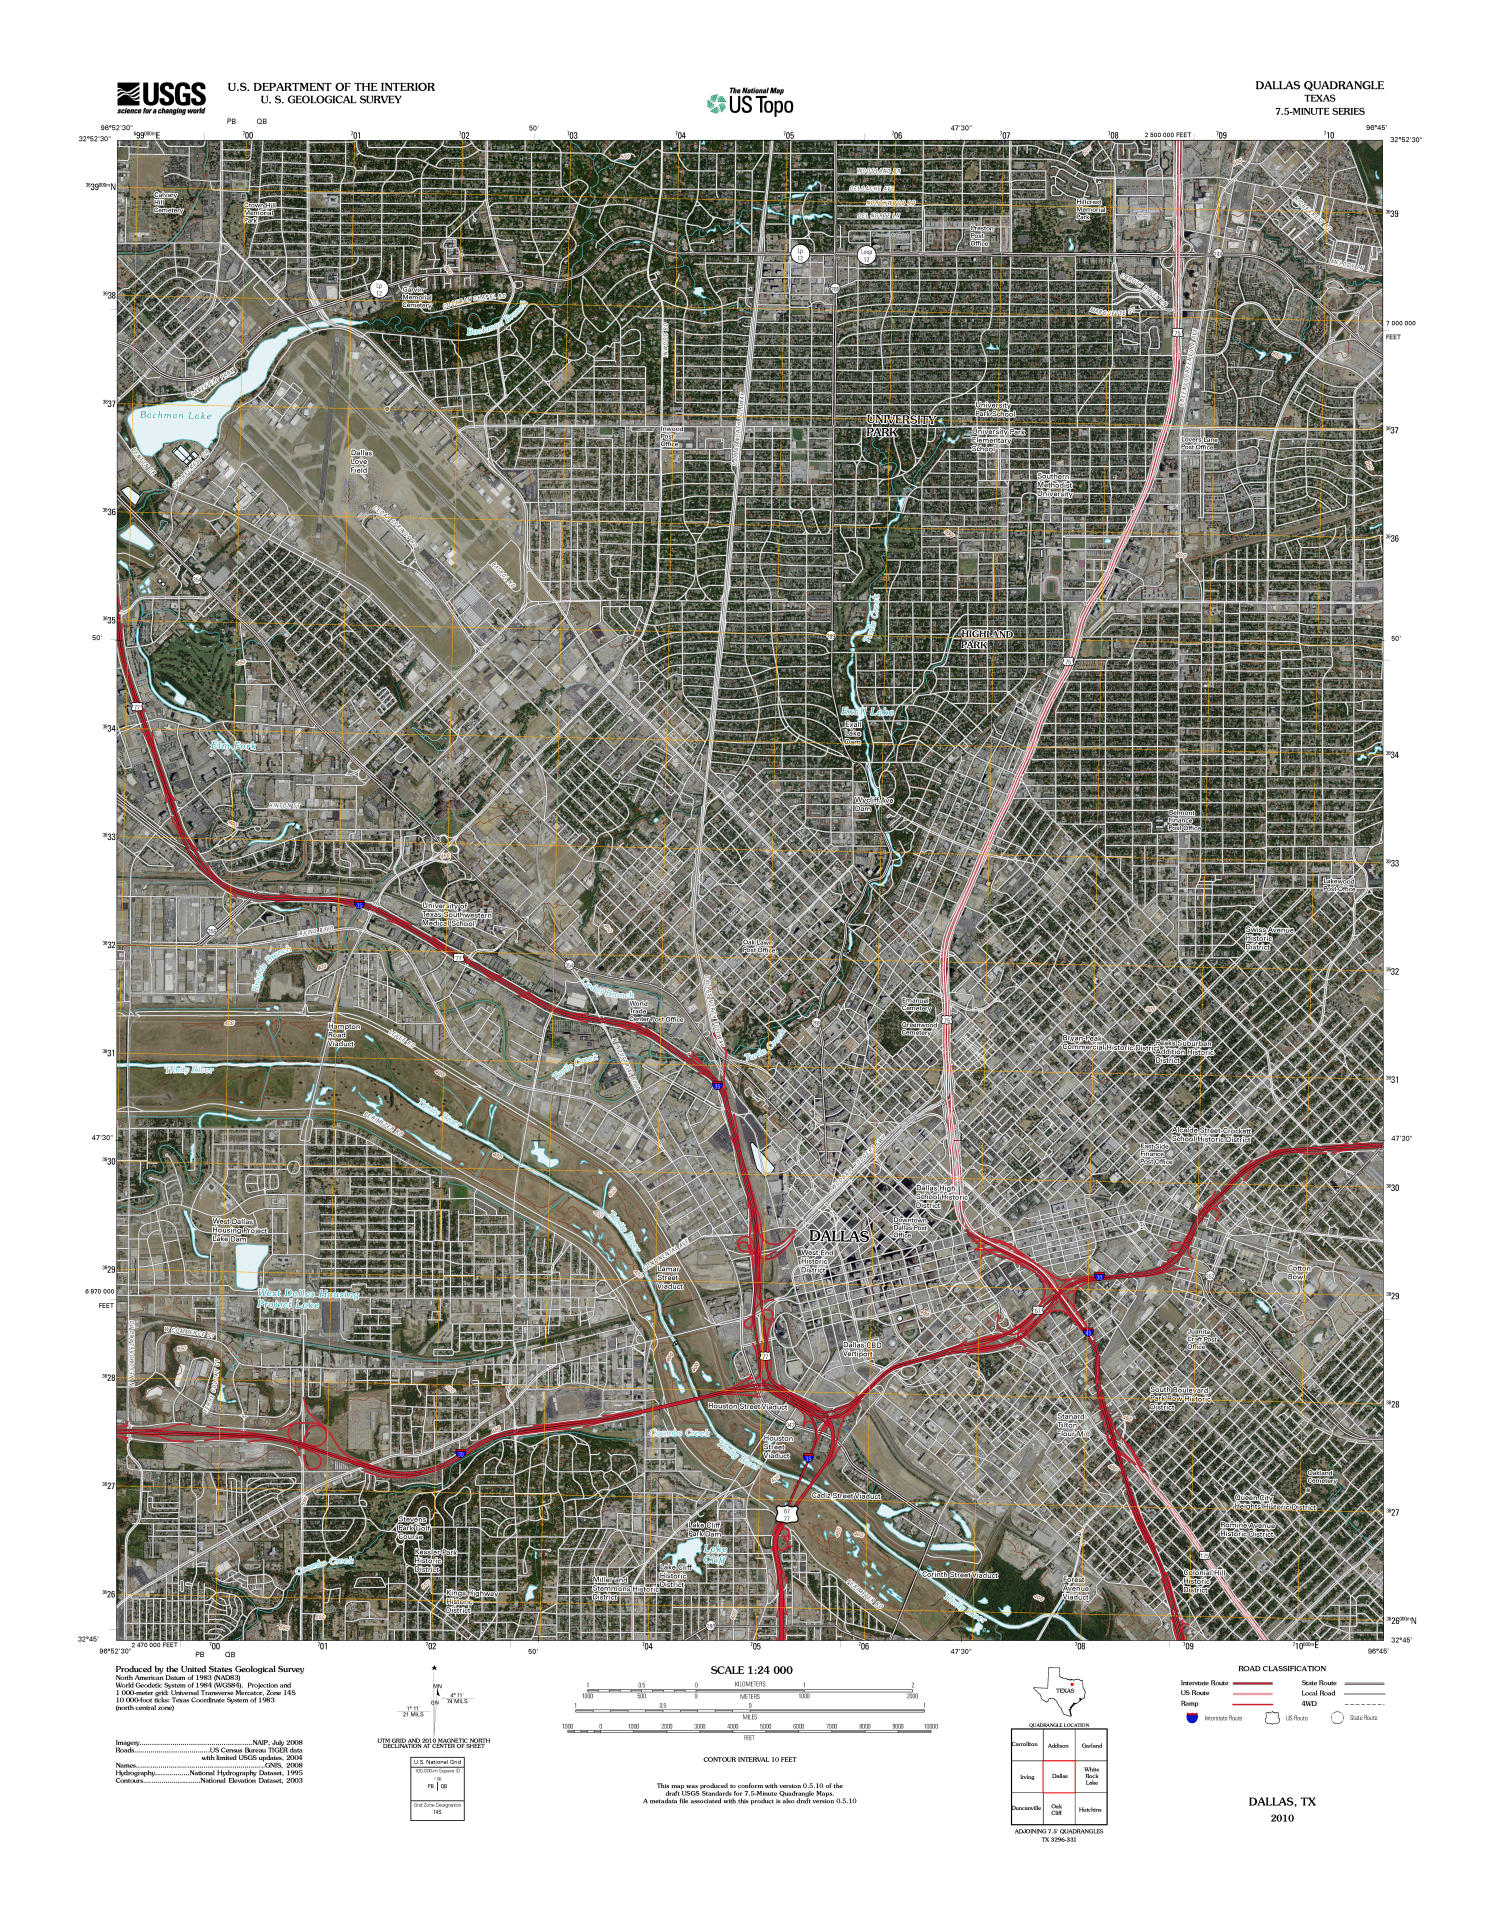 Dallas Quadrangle, Satellite image topographic map of a portion of Texas from the United States Geological Survey (USGS) project. The map includes towns, historic or notable sites, bodies of water, and other geologic features. Scale 1:24,000,